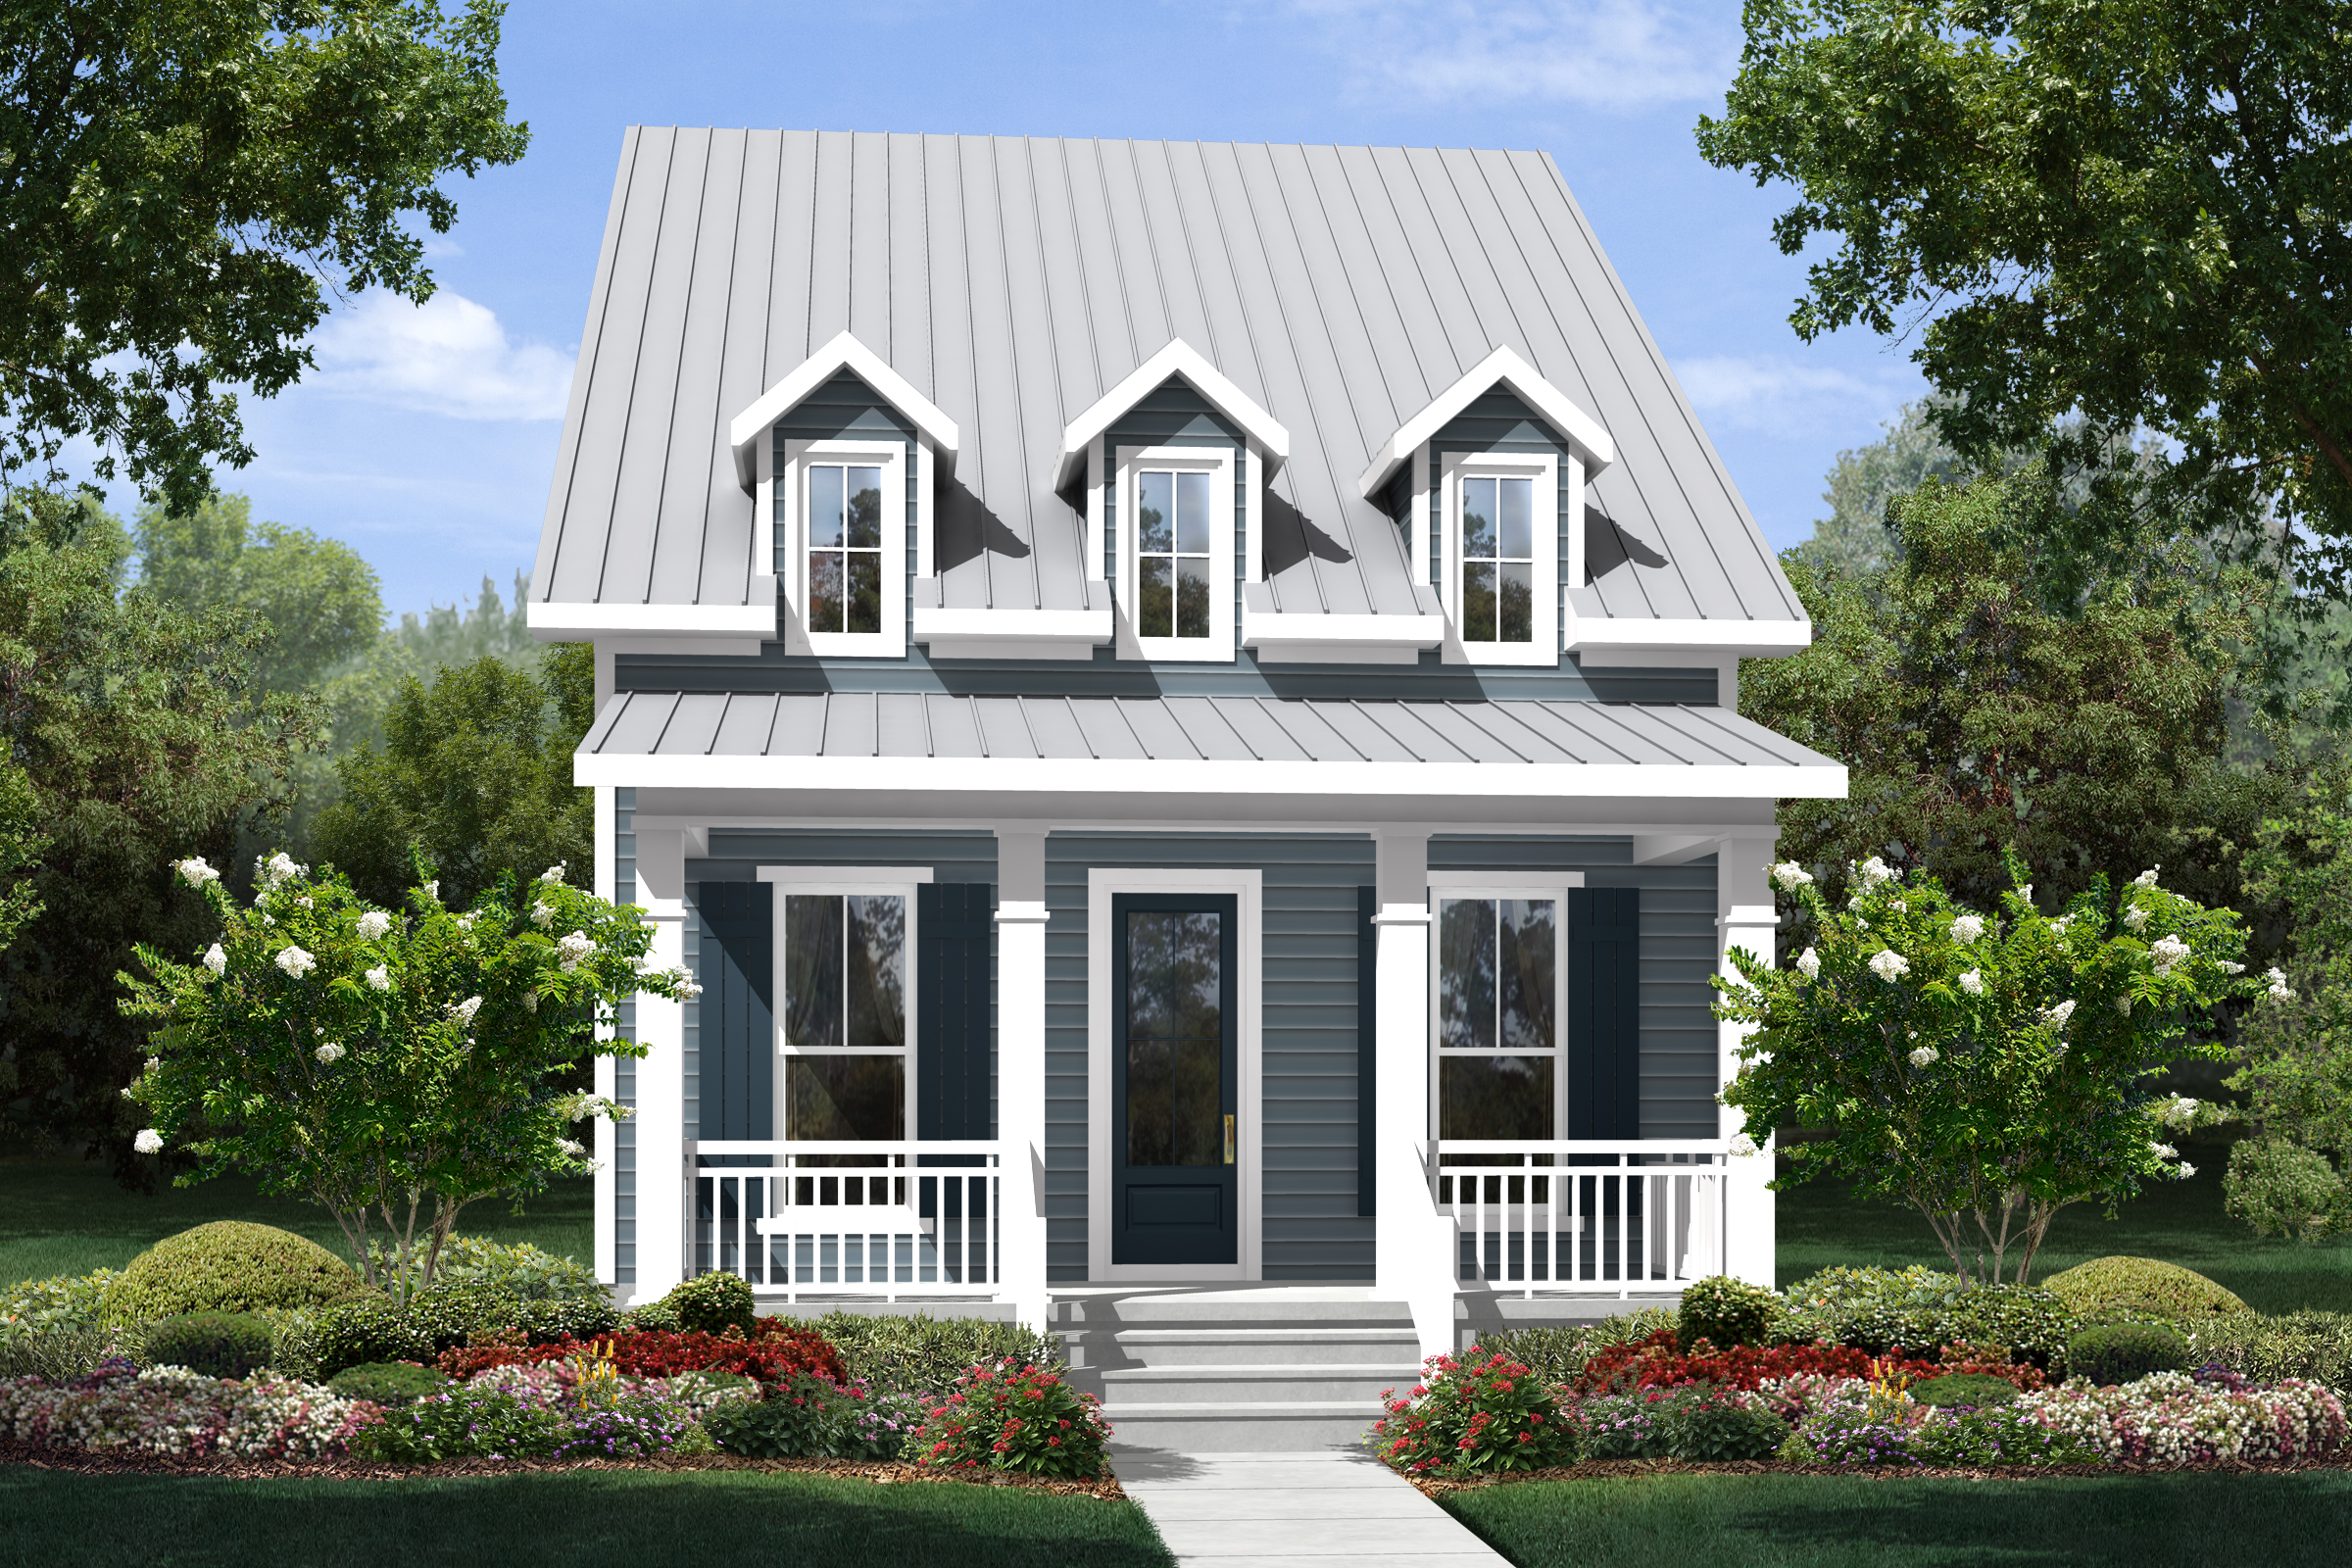 Small house plan home plan 142 -  142 1122 Front Elevation Of Cottage Home Theplancollection House Plan 142 1122